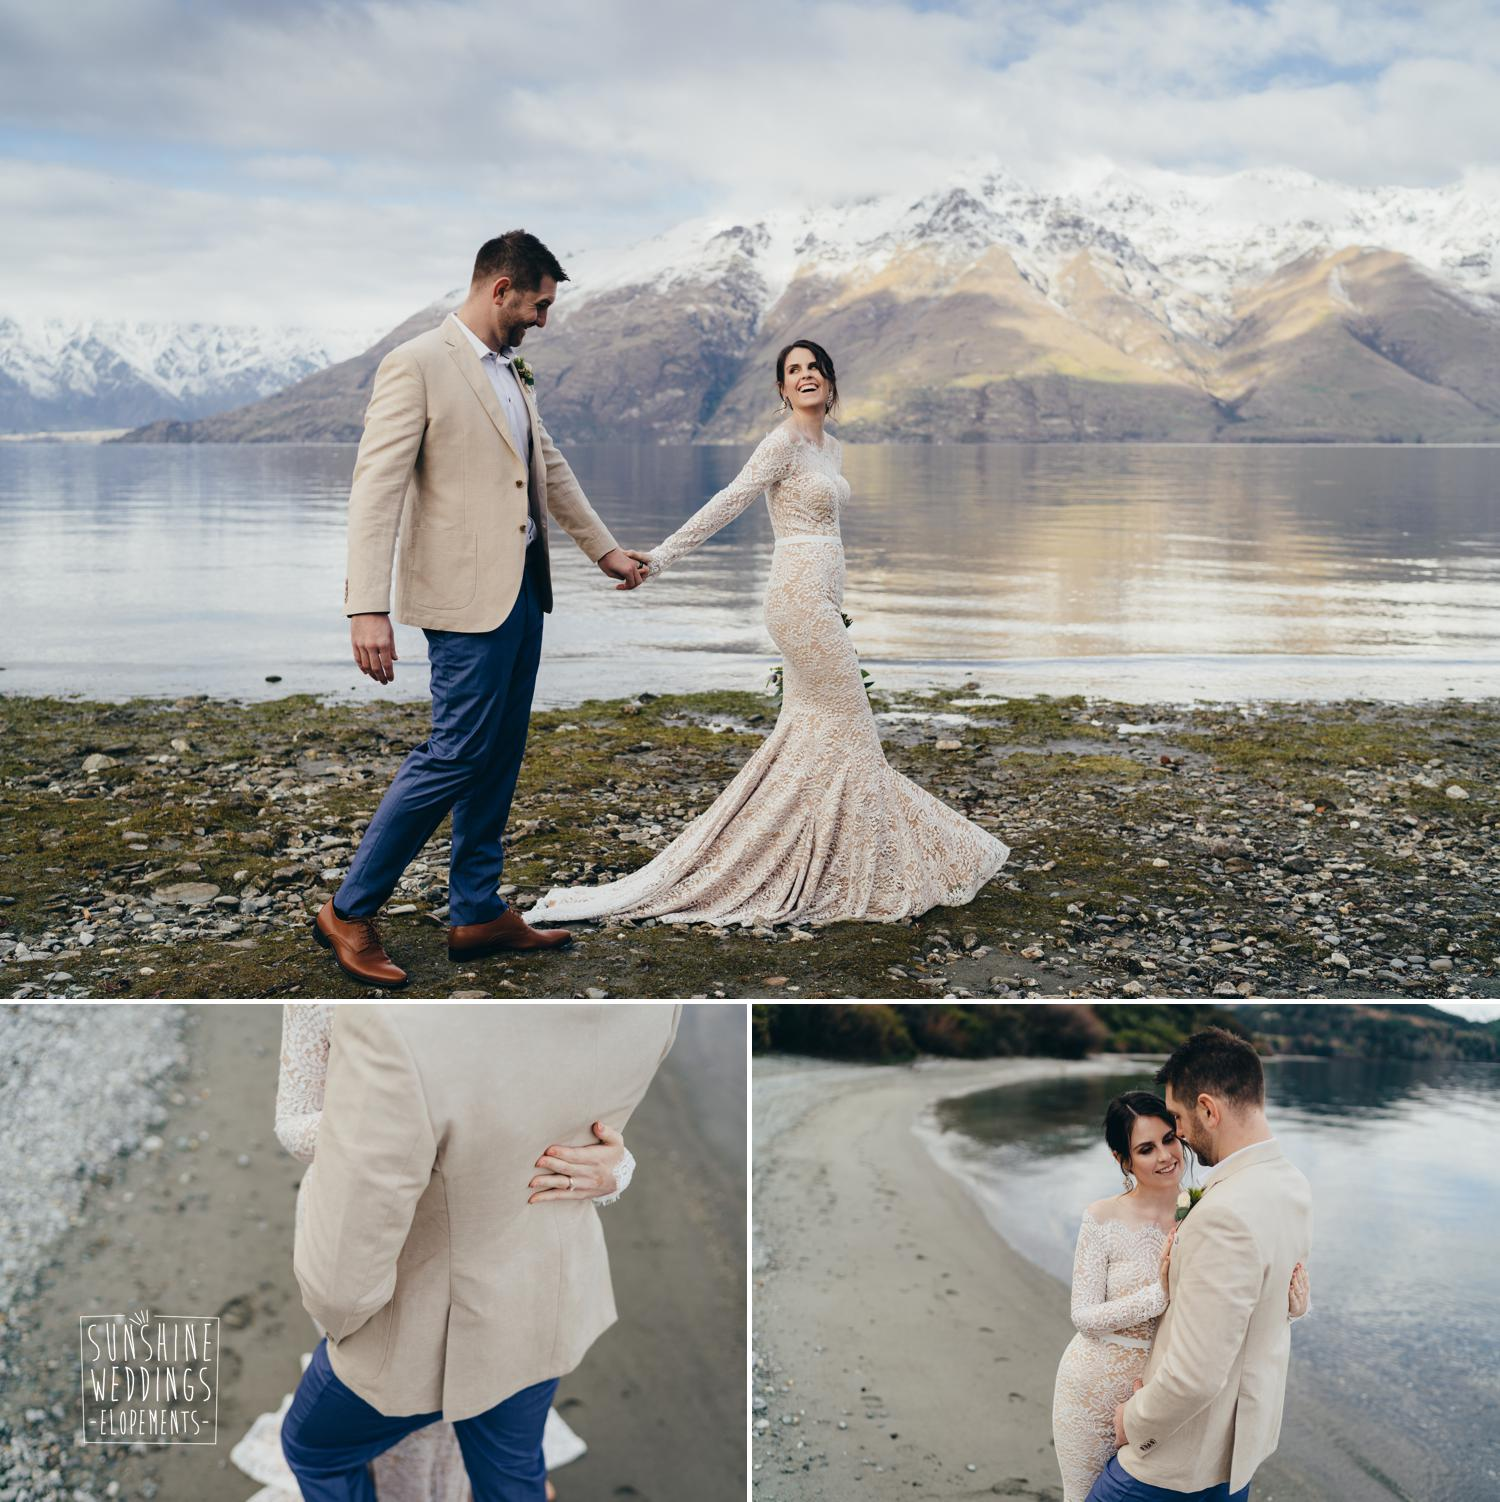 Lakeside wedding packages